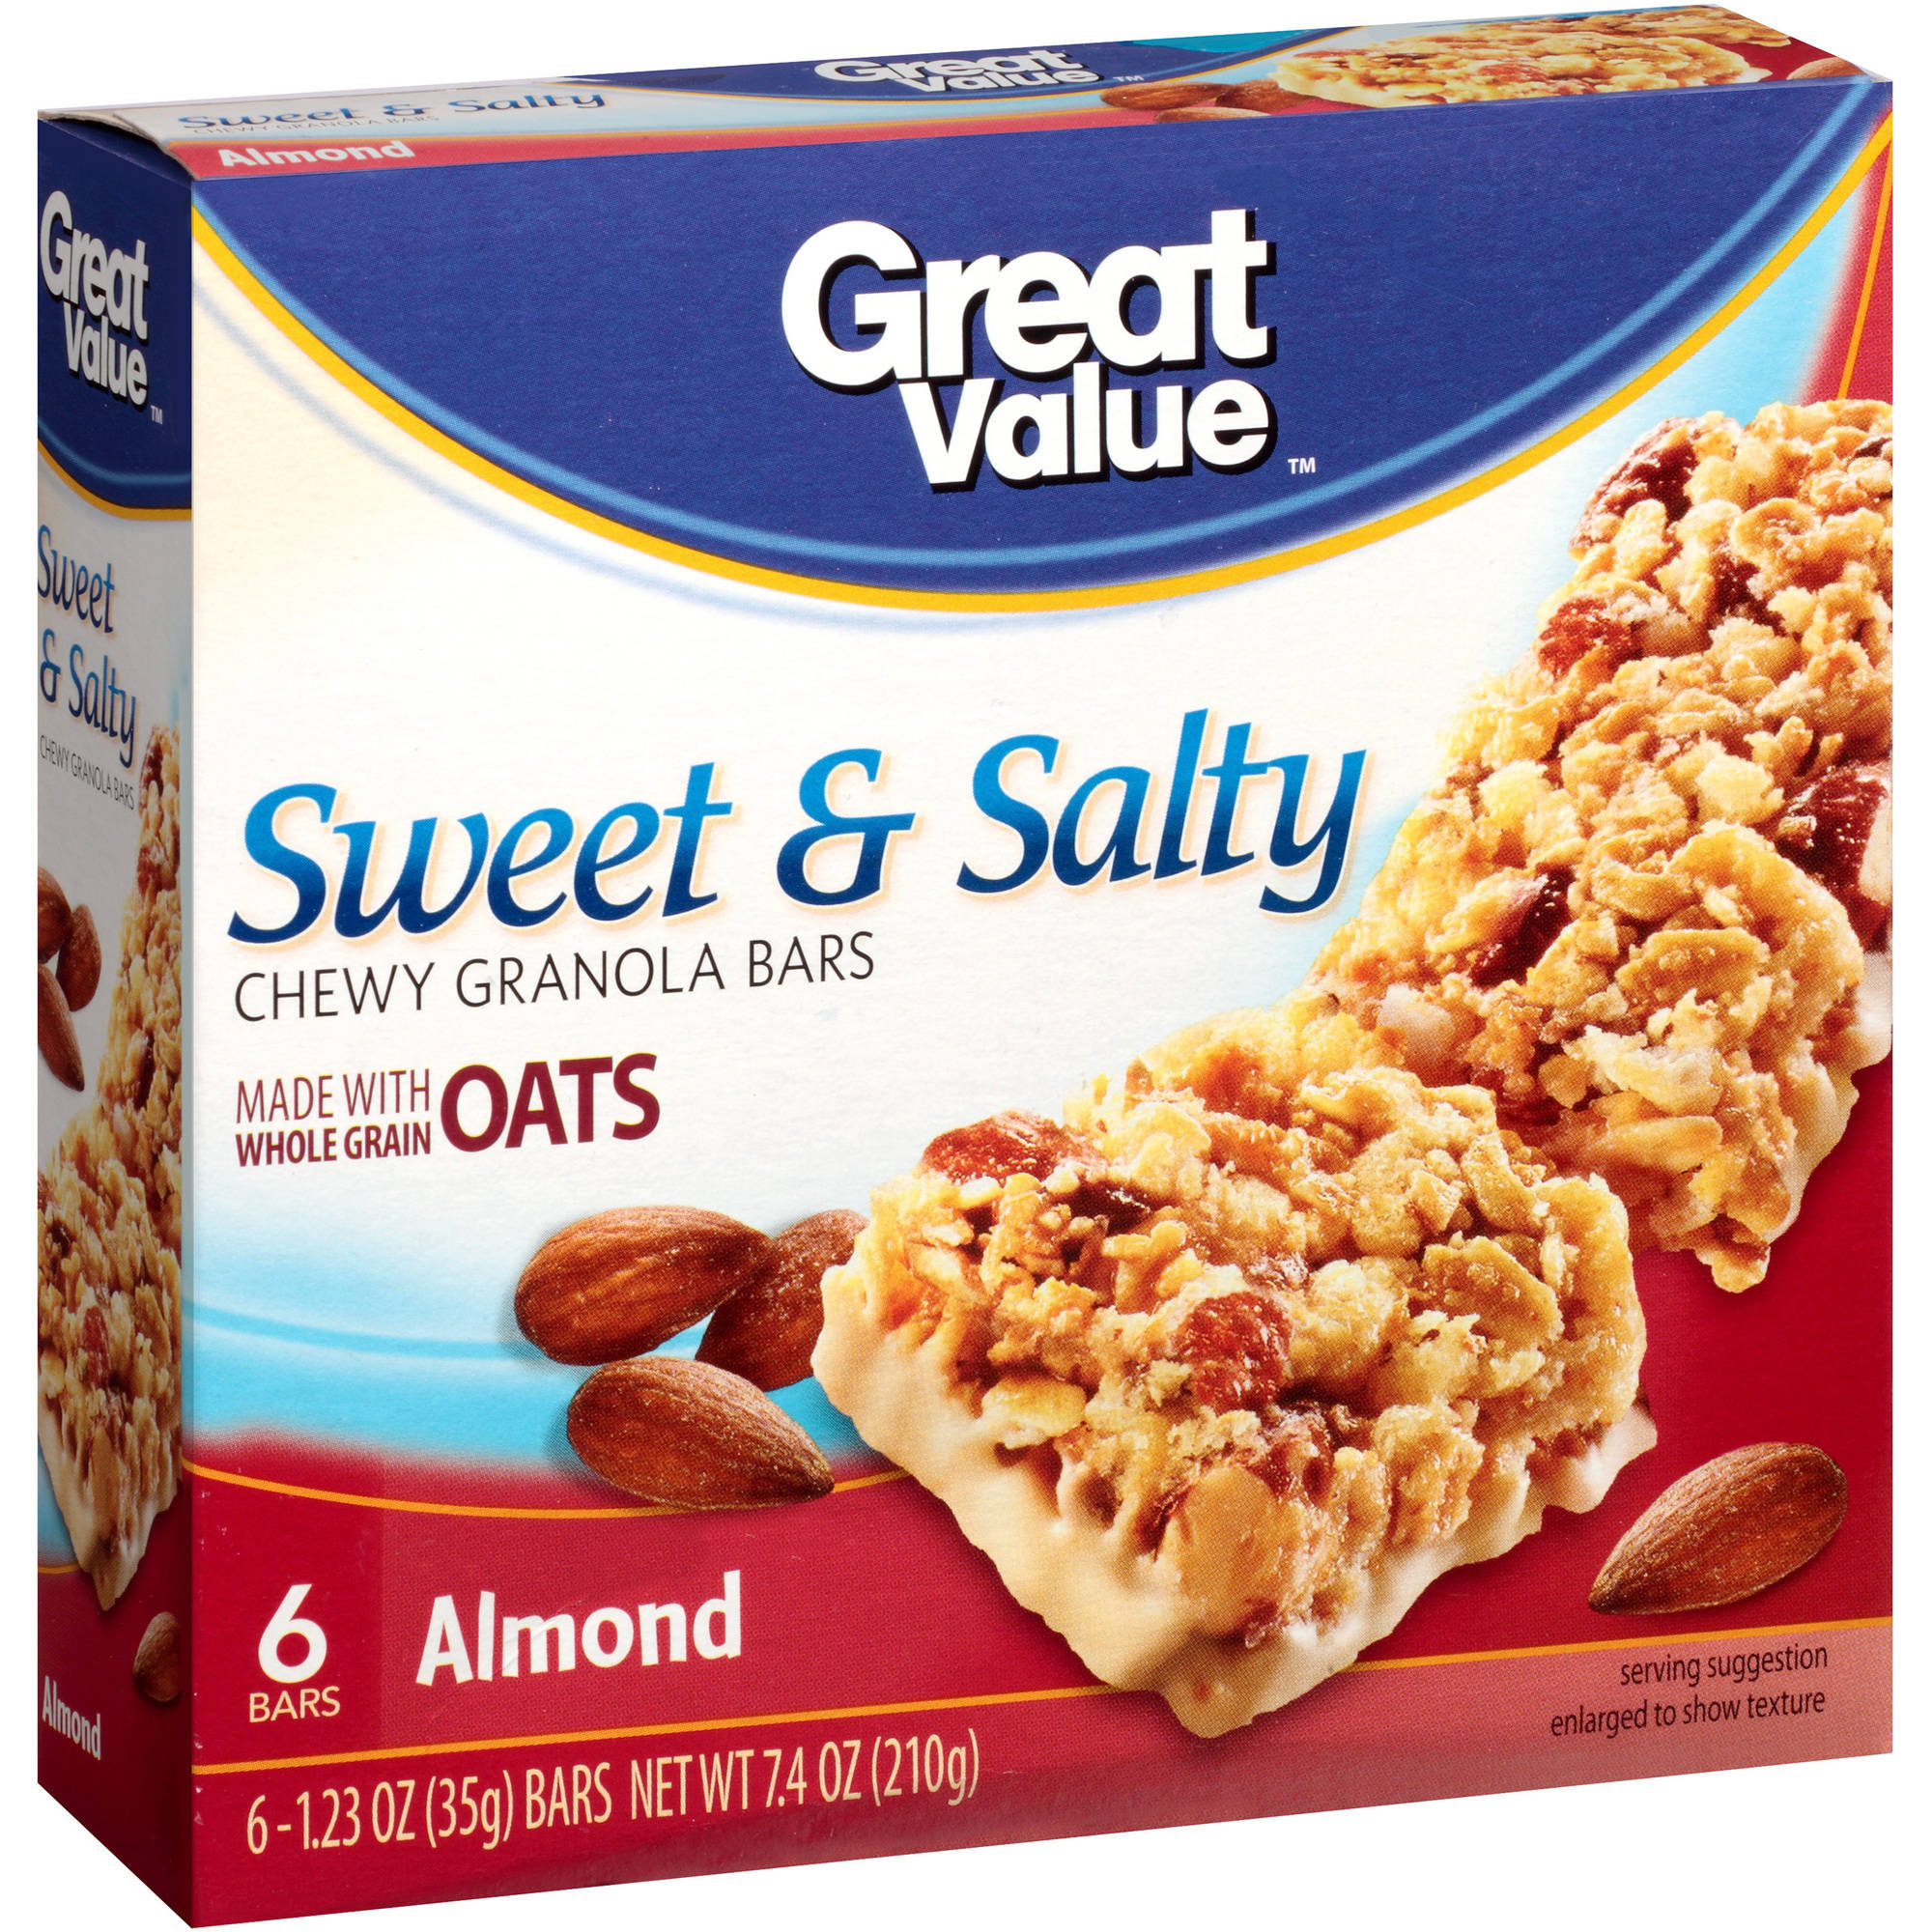 Great Value Sweet & Salty Almonds Granola Bars, 6 pk